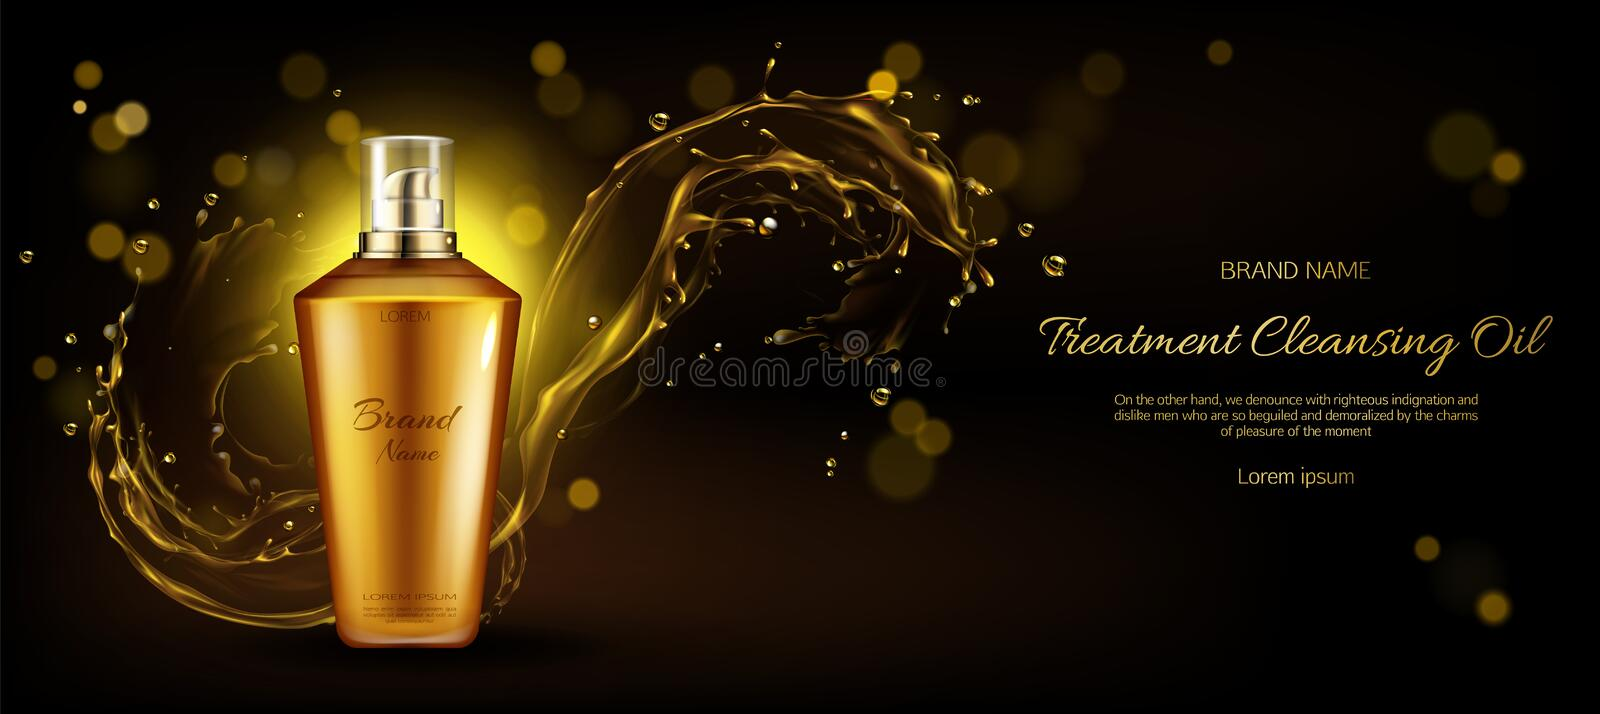 Cosmetics oil cleansing treatment bottle mockup. Cosmetics oil for cleansing treatment bottle mockup on dark background with gold liquid droplets splash. Beauty stock illustration